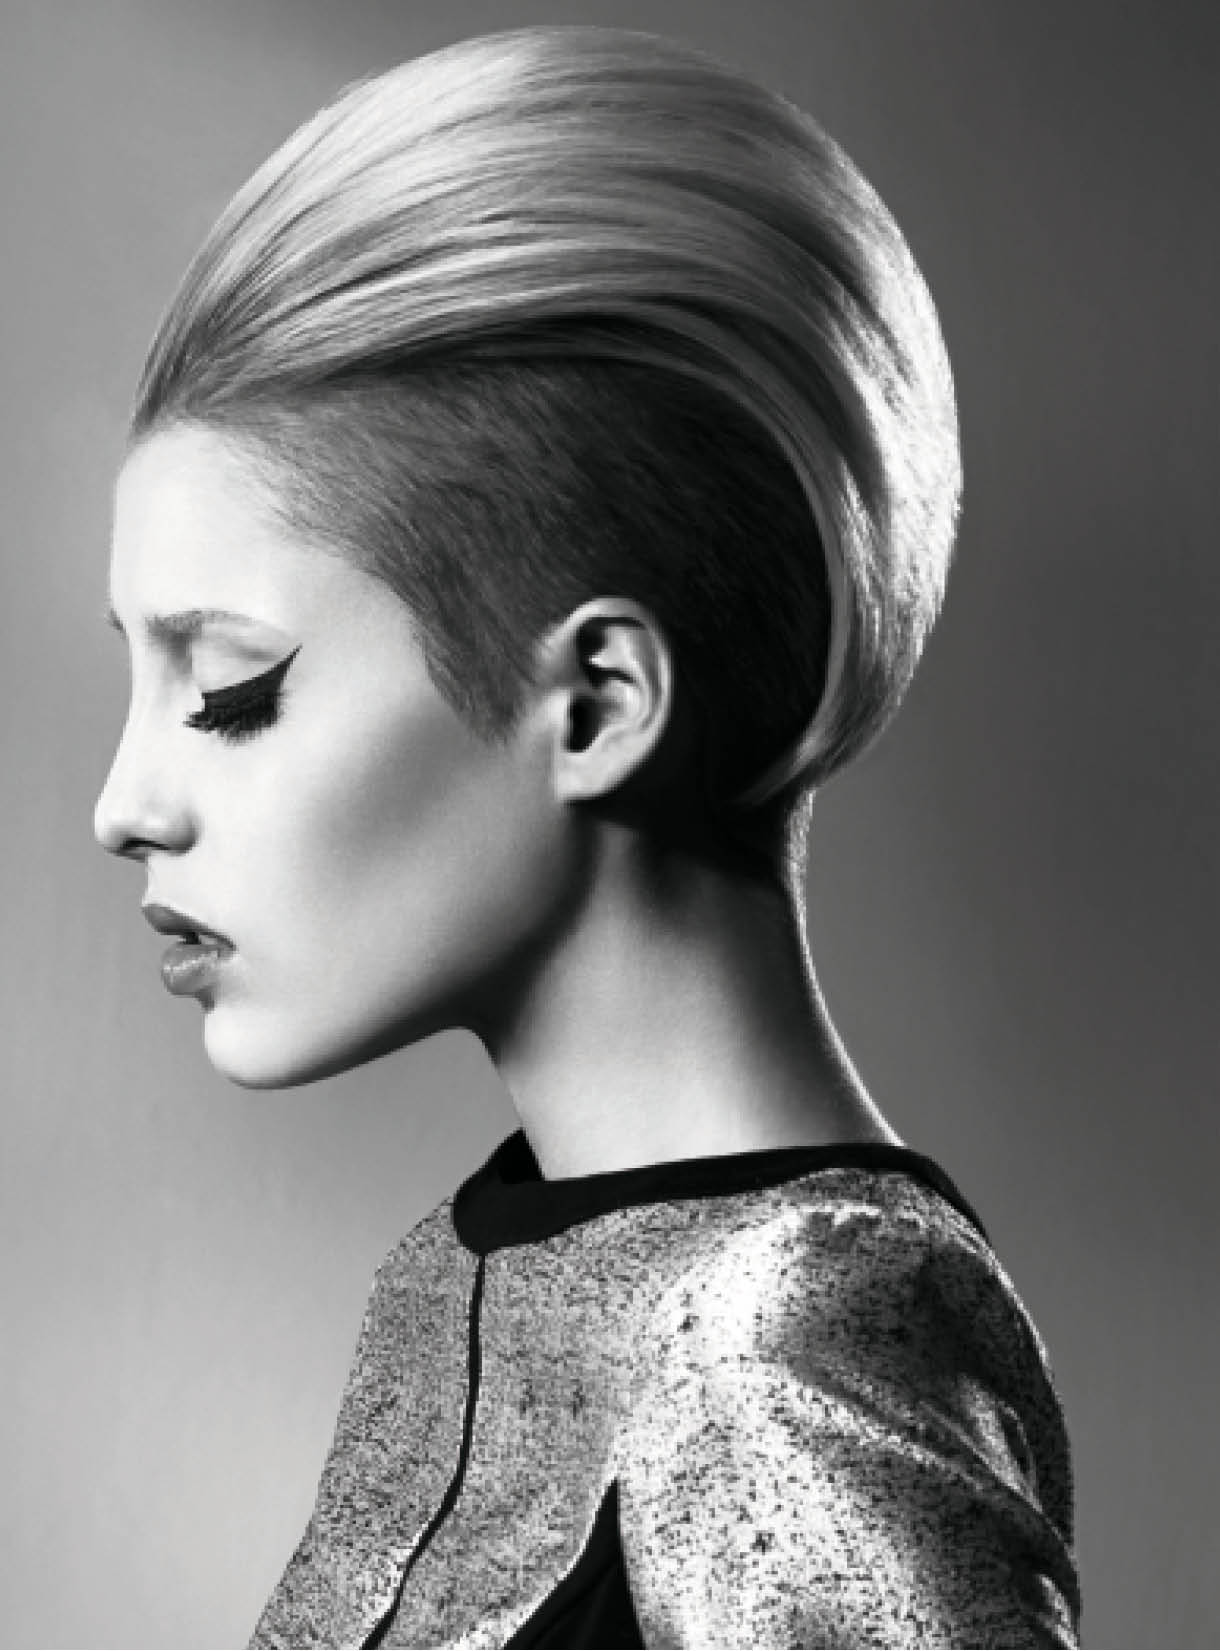 For a contemporary yet retro look, Kerry Mather shaved hair underneath from the ears to the low recession area, maintaining length and weight throughout the top. After drying the hair, she added volume at the crown with crimpers and backcombed, dressing hair over it.